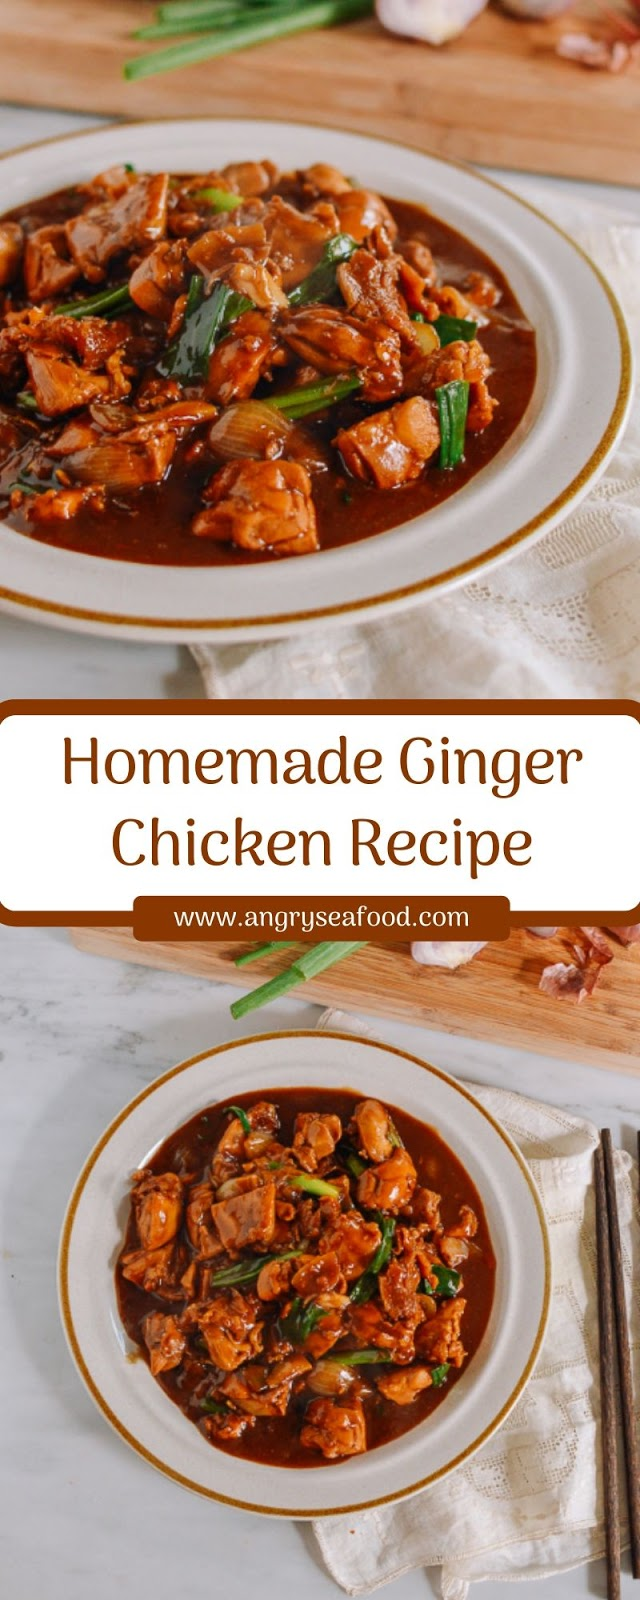 Homemade Ginger Chicken Recipe